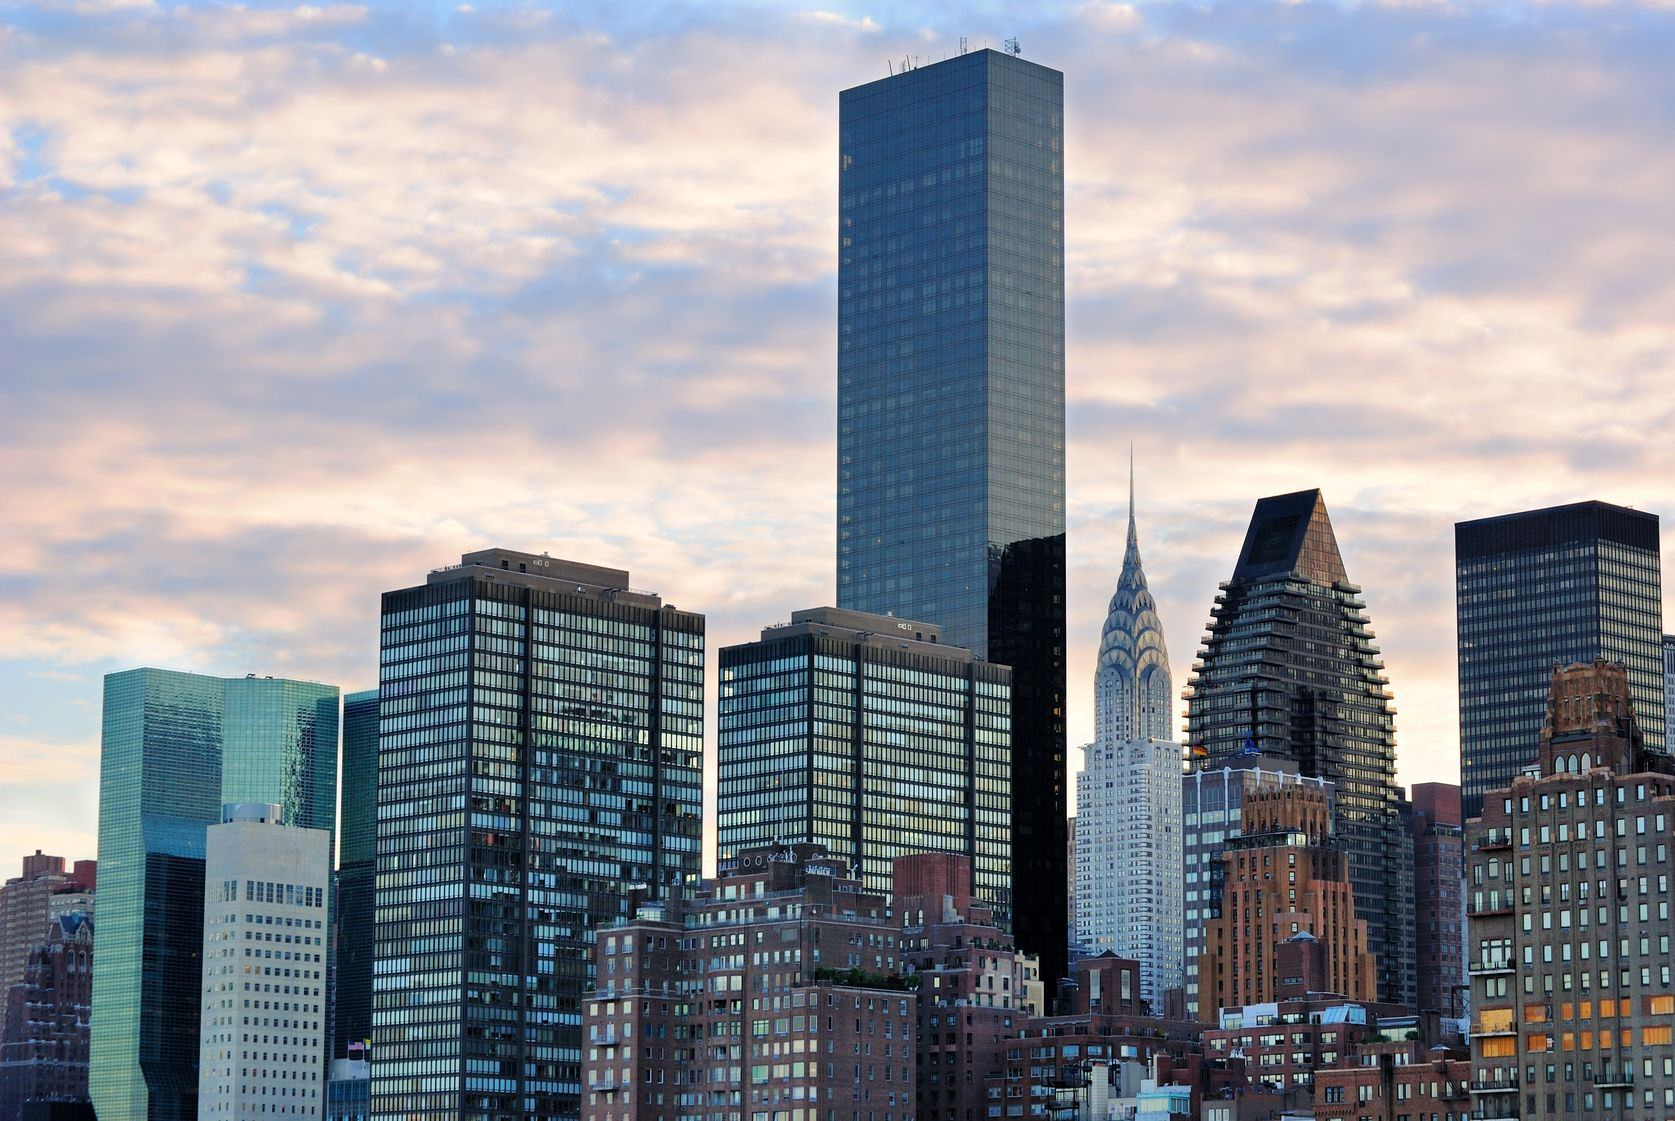 Construction Set to Begin on Extraordinary 57th Street Tower